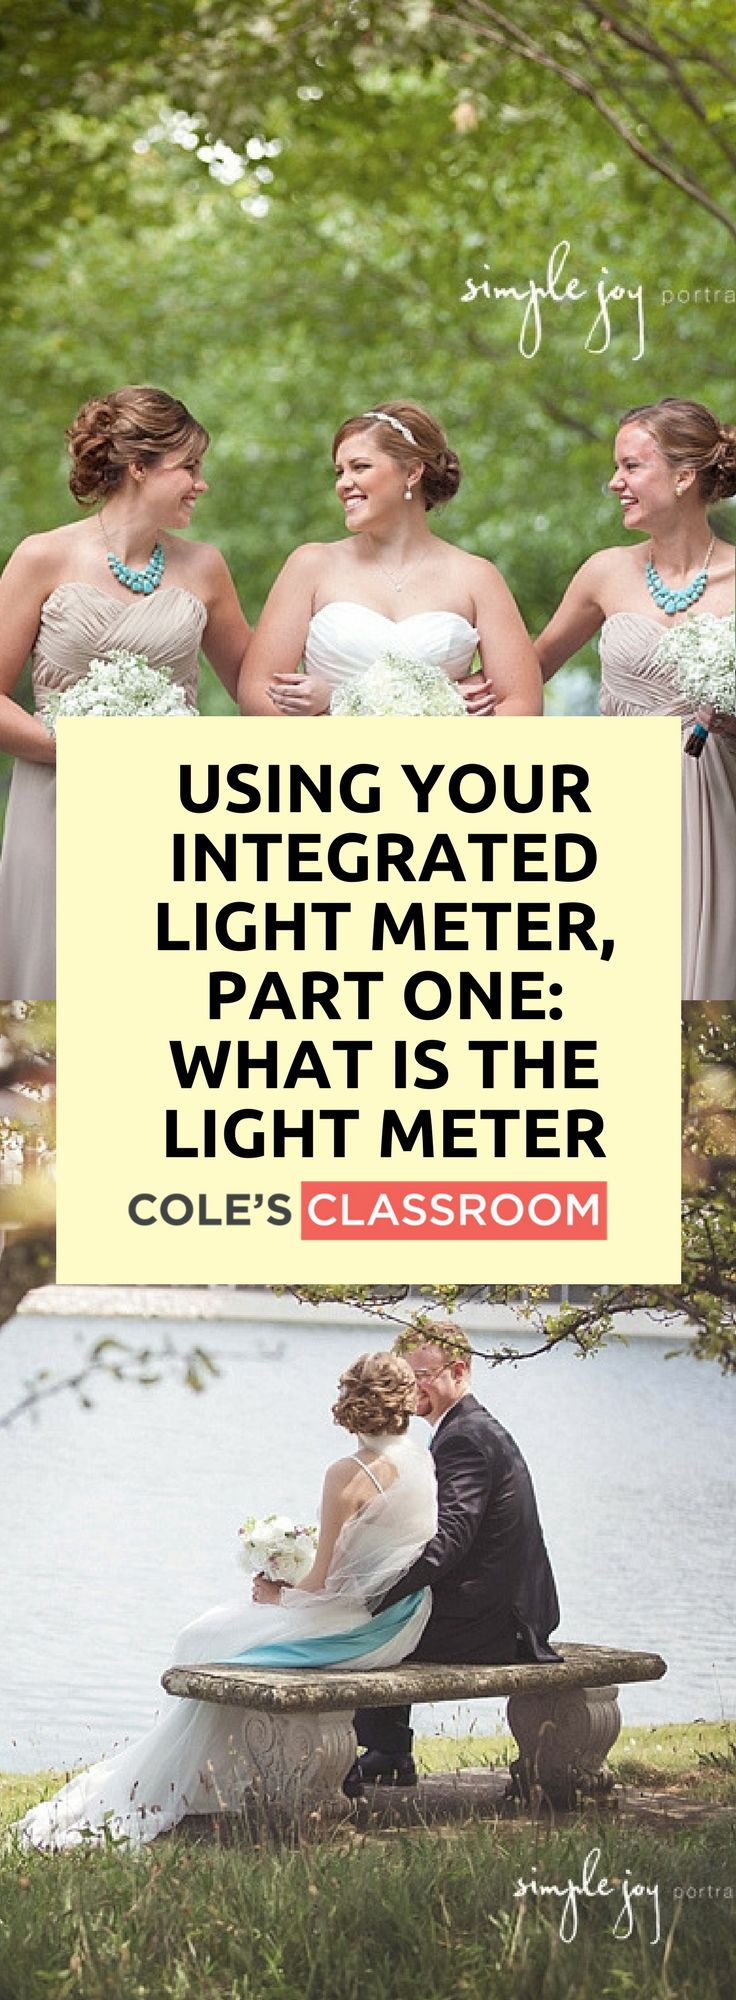 PHOTOGRAPHY TIPS & TECHNIQUE: Using Your Integrated Light Meter, Part One: What is the Light Meter. Find out more at: https://www.colesclassroom.com/mastering-exposure-camera-integrated-light-meter-part-one/